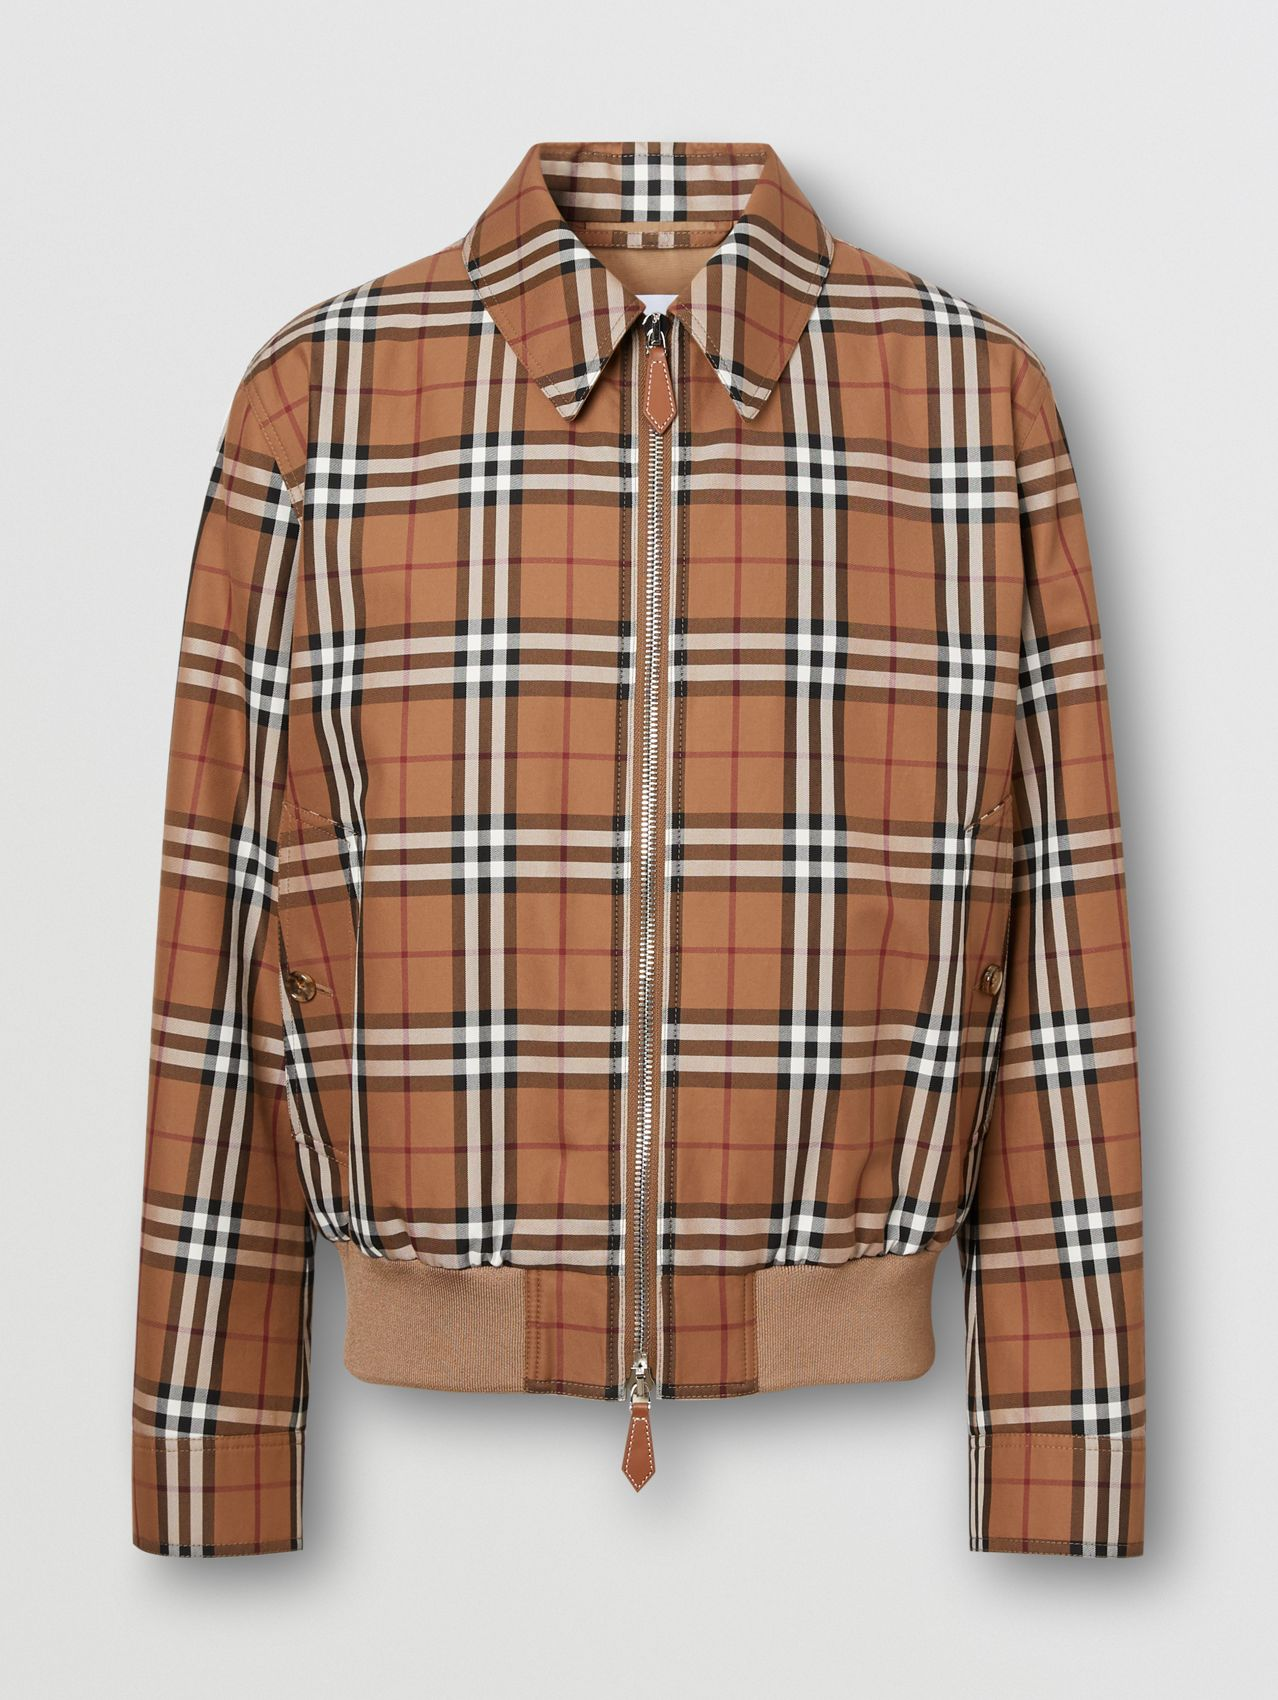 Harrington-Jacke mit Vintage Check-Muster und Logo-Applikation (Birkenbraun)